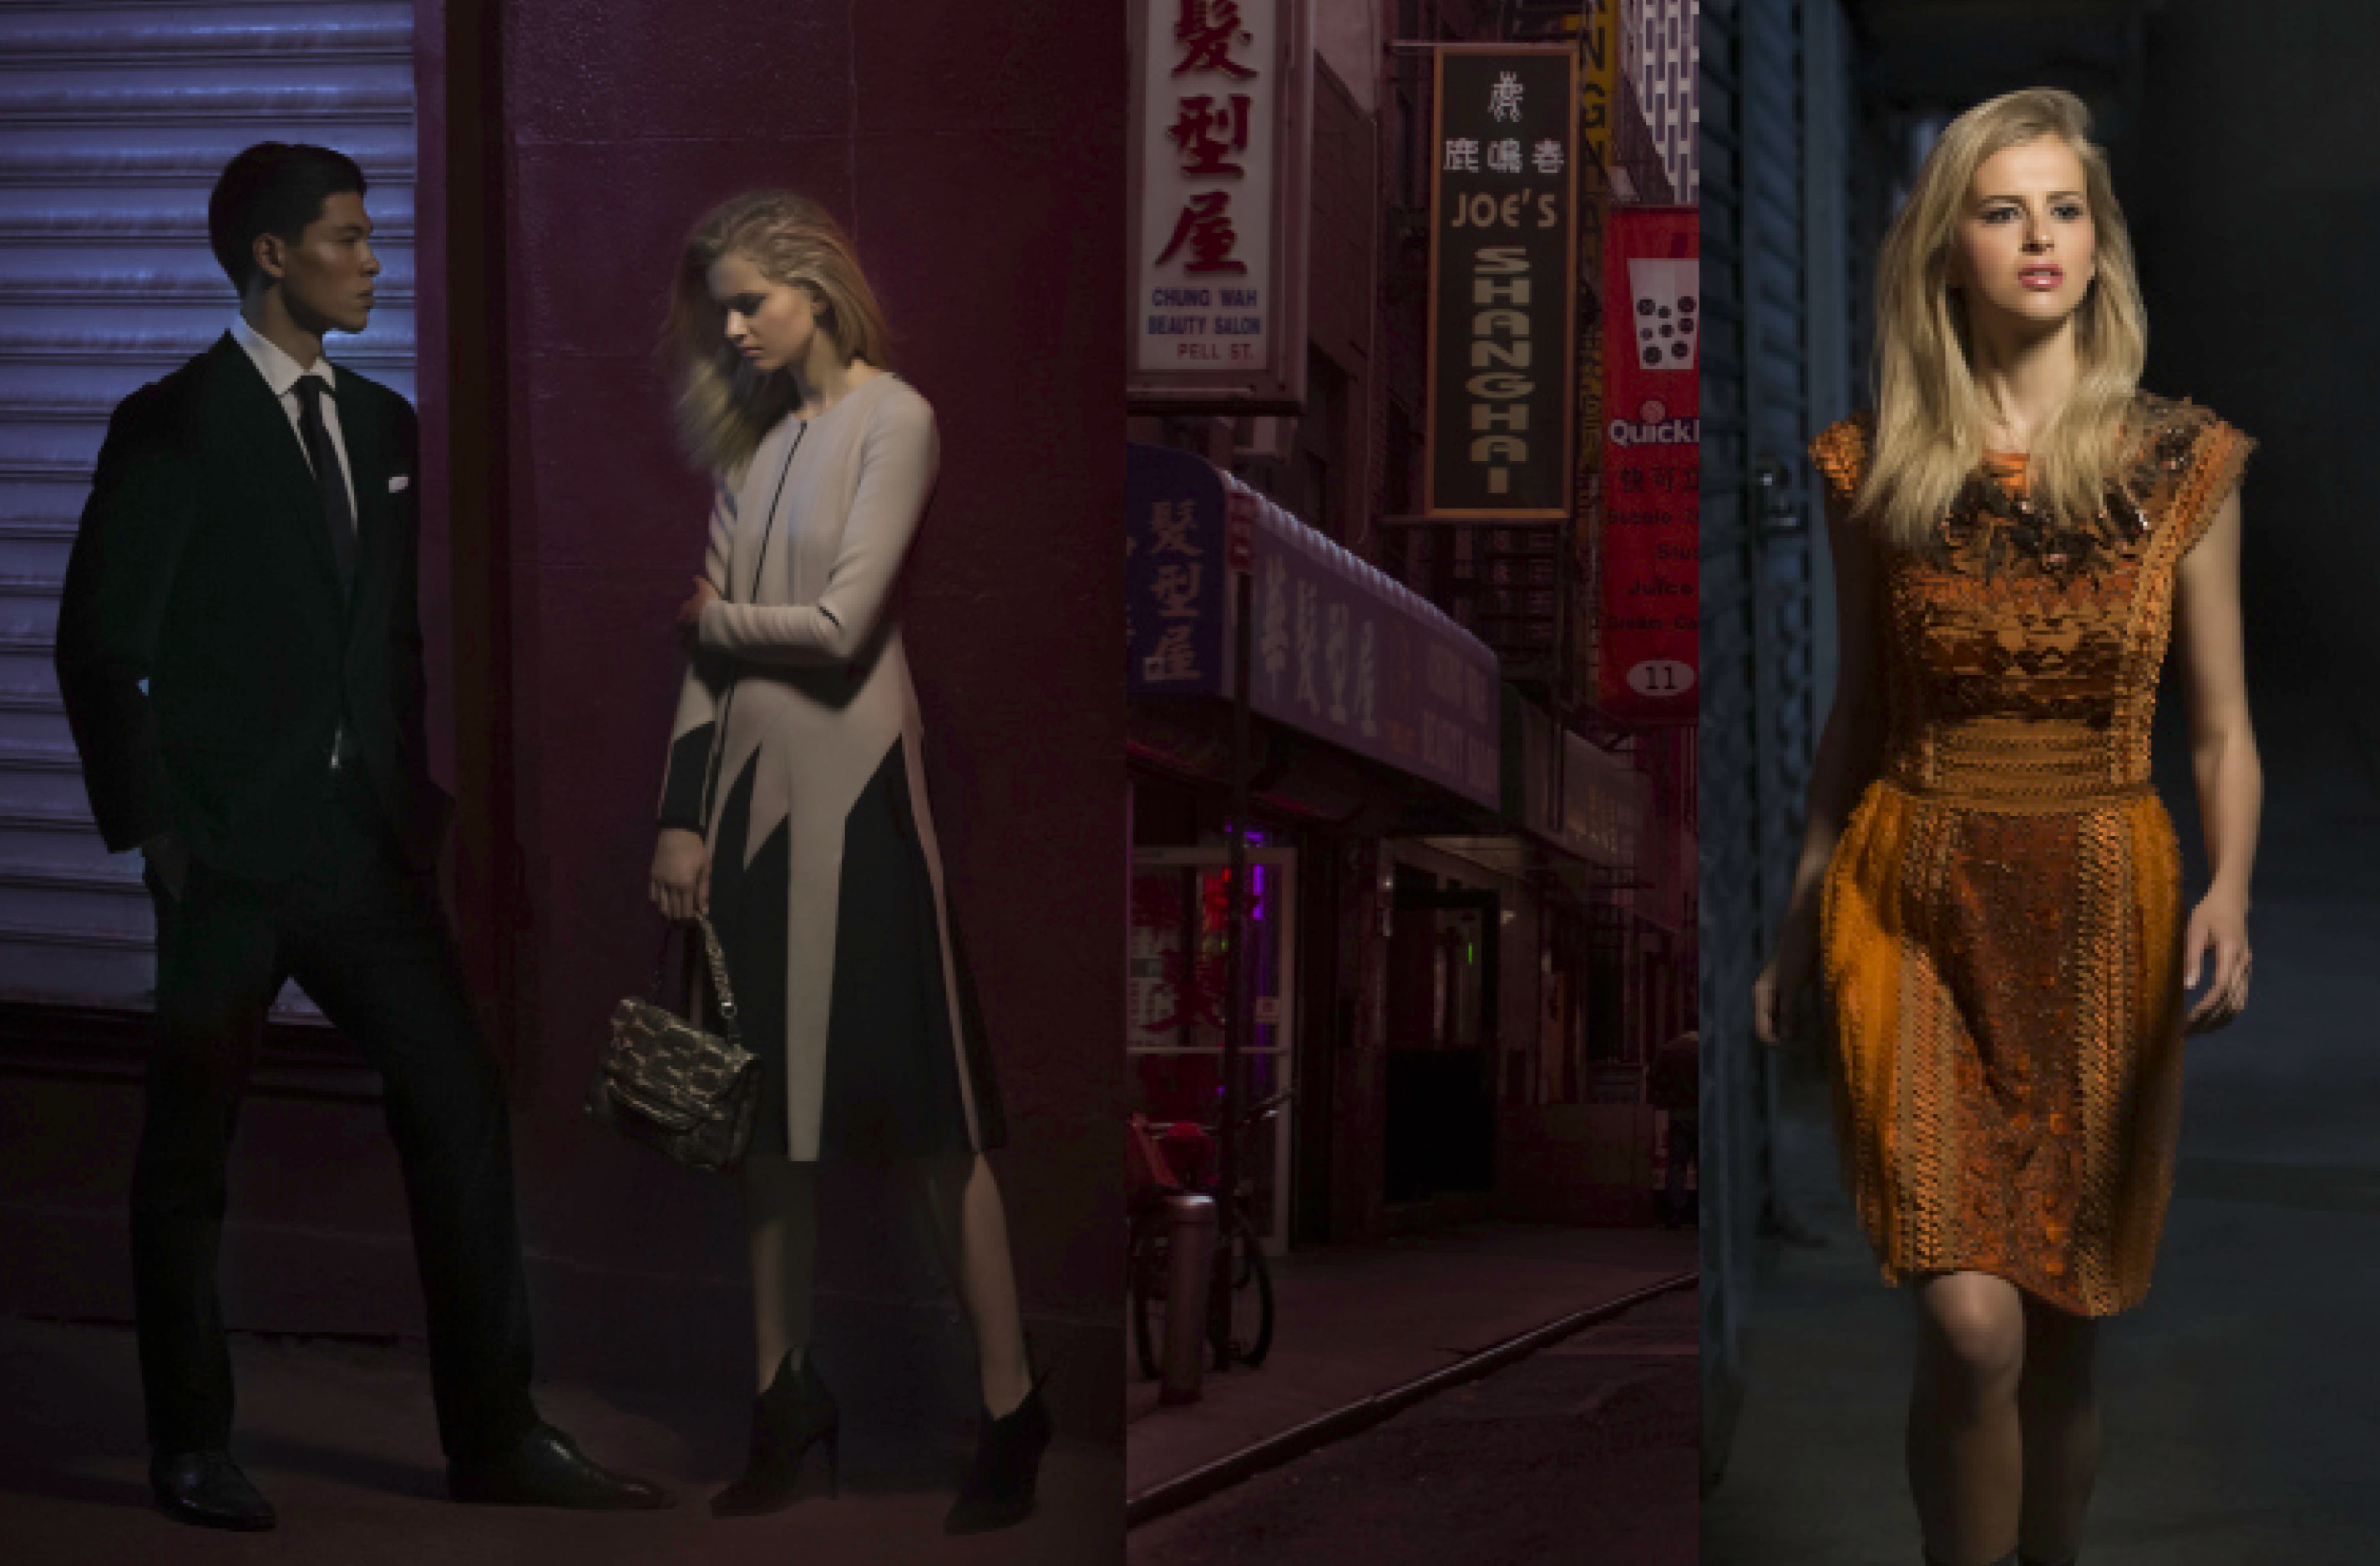 LEFT: Dress, Bag & Shoes BOTTEGA VENETA/ Suit PRADARIGHT: Dress ALBERTA FERRETTI